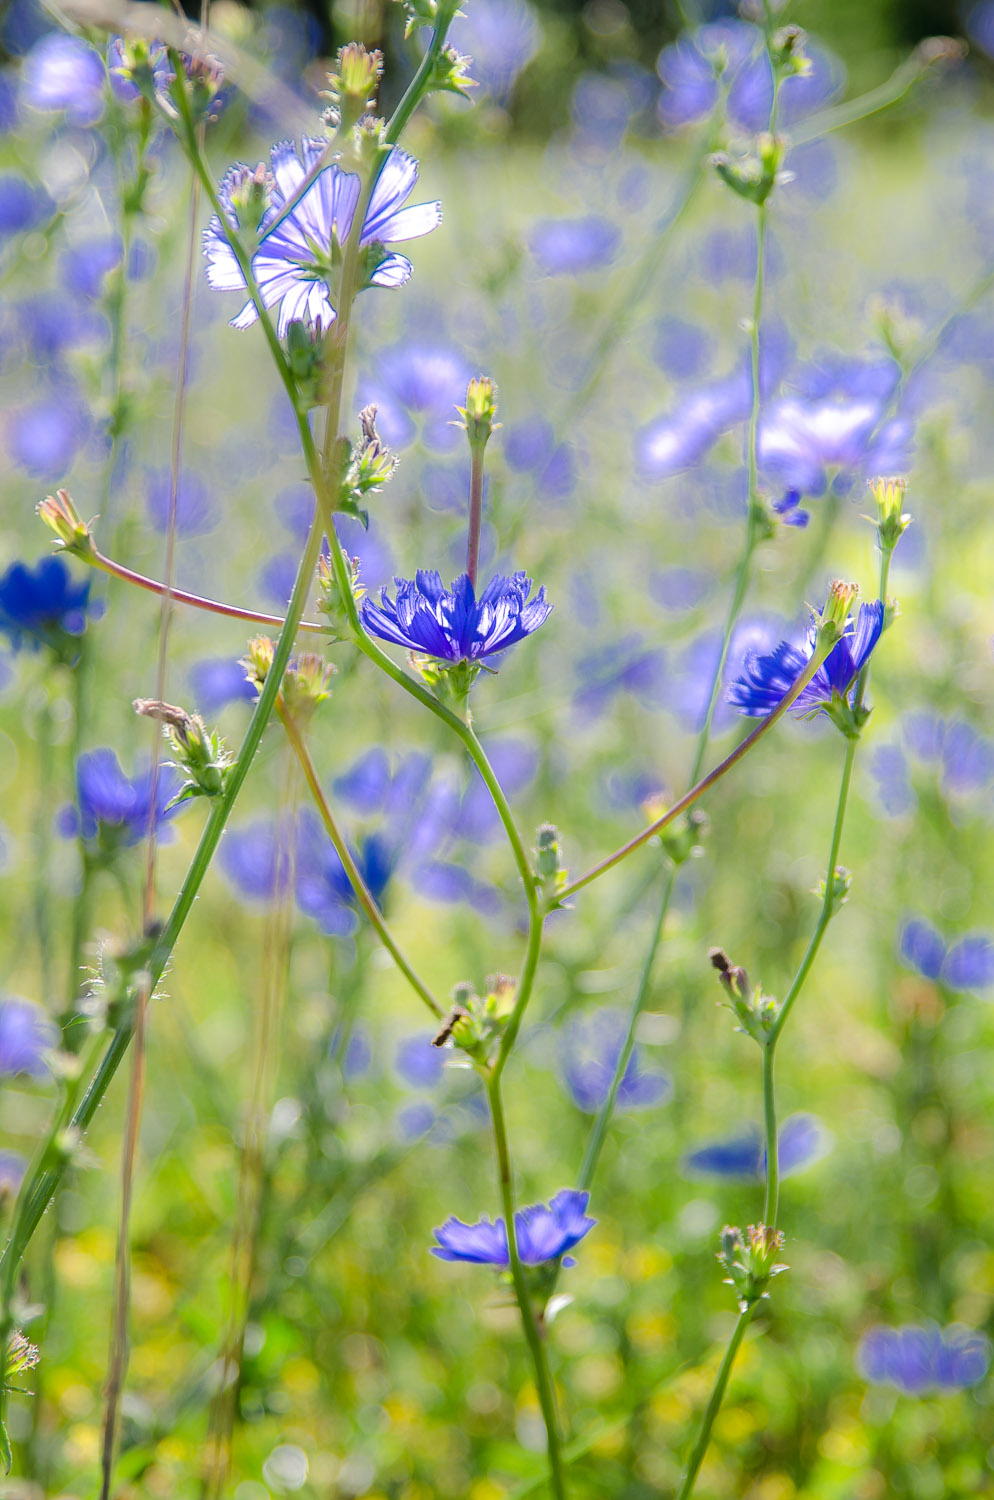 Wildflowers (Chicory)